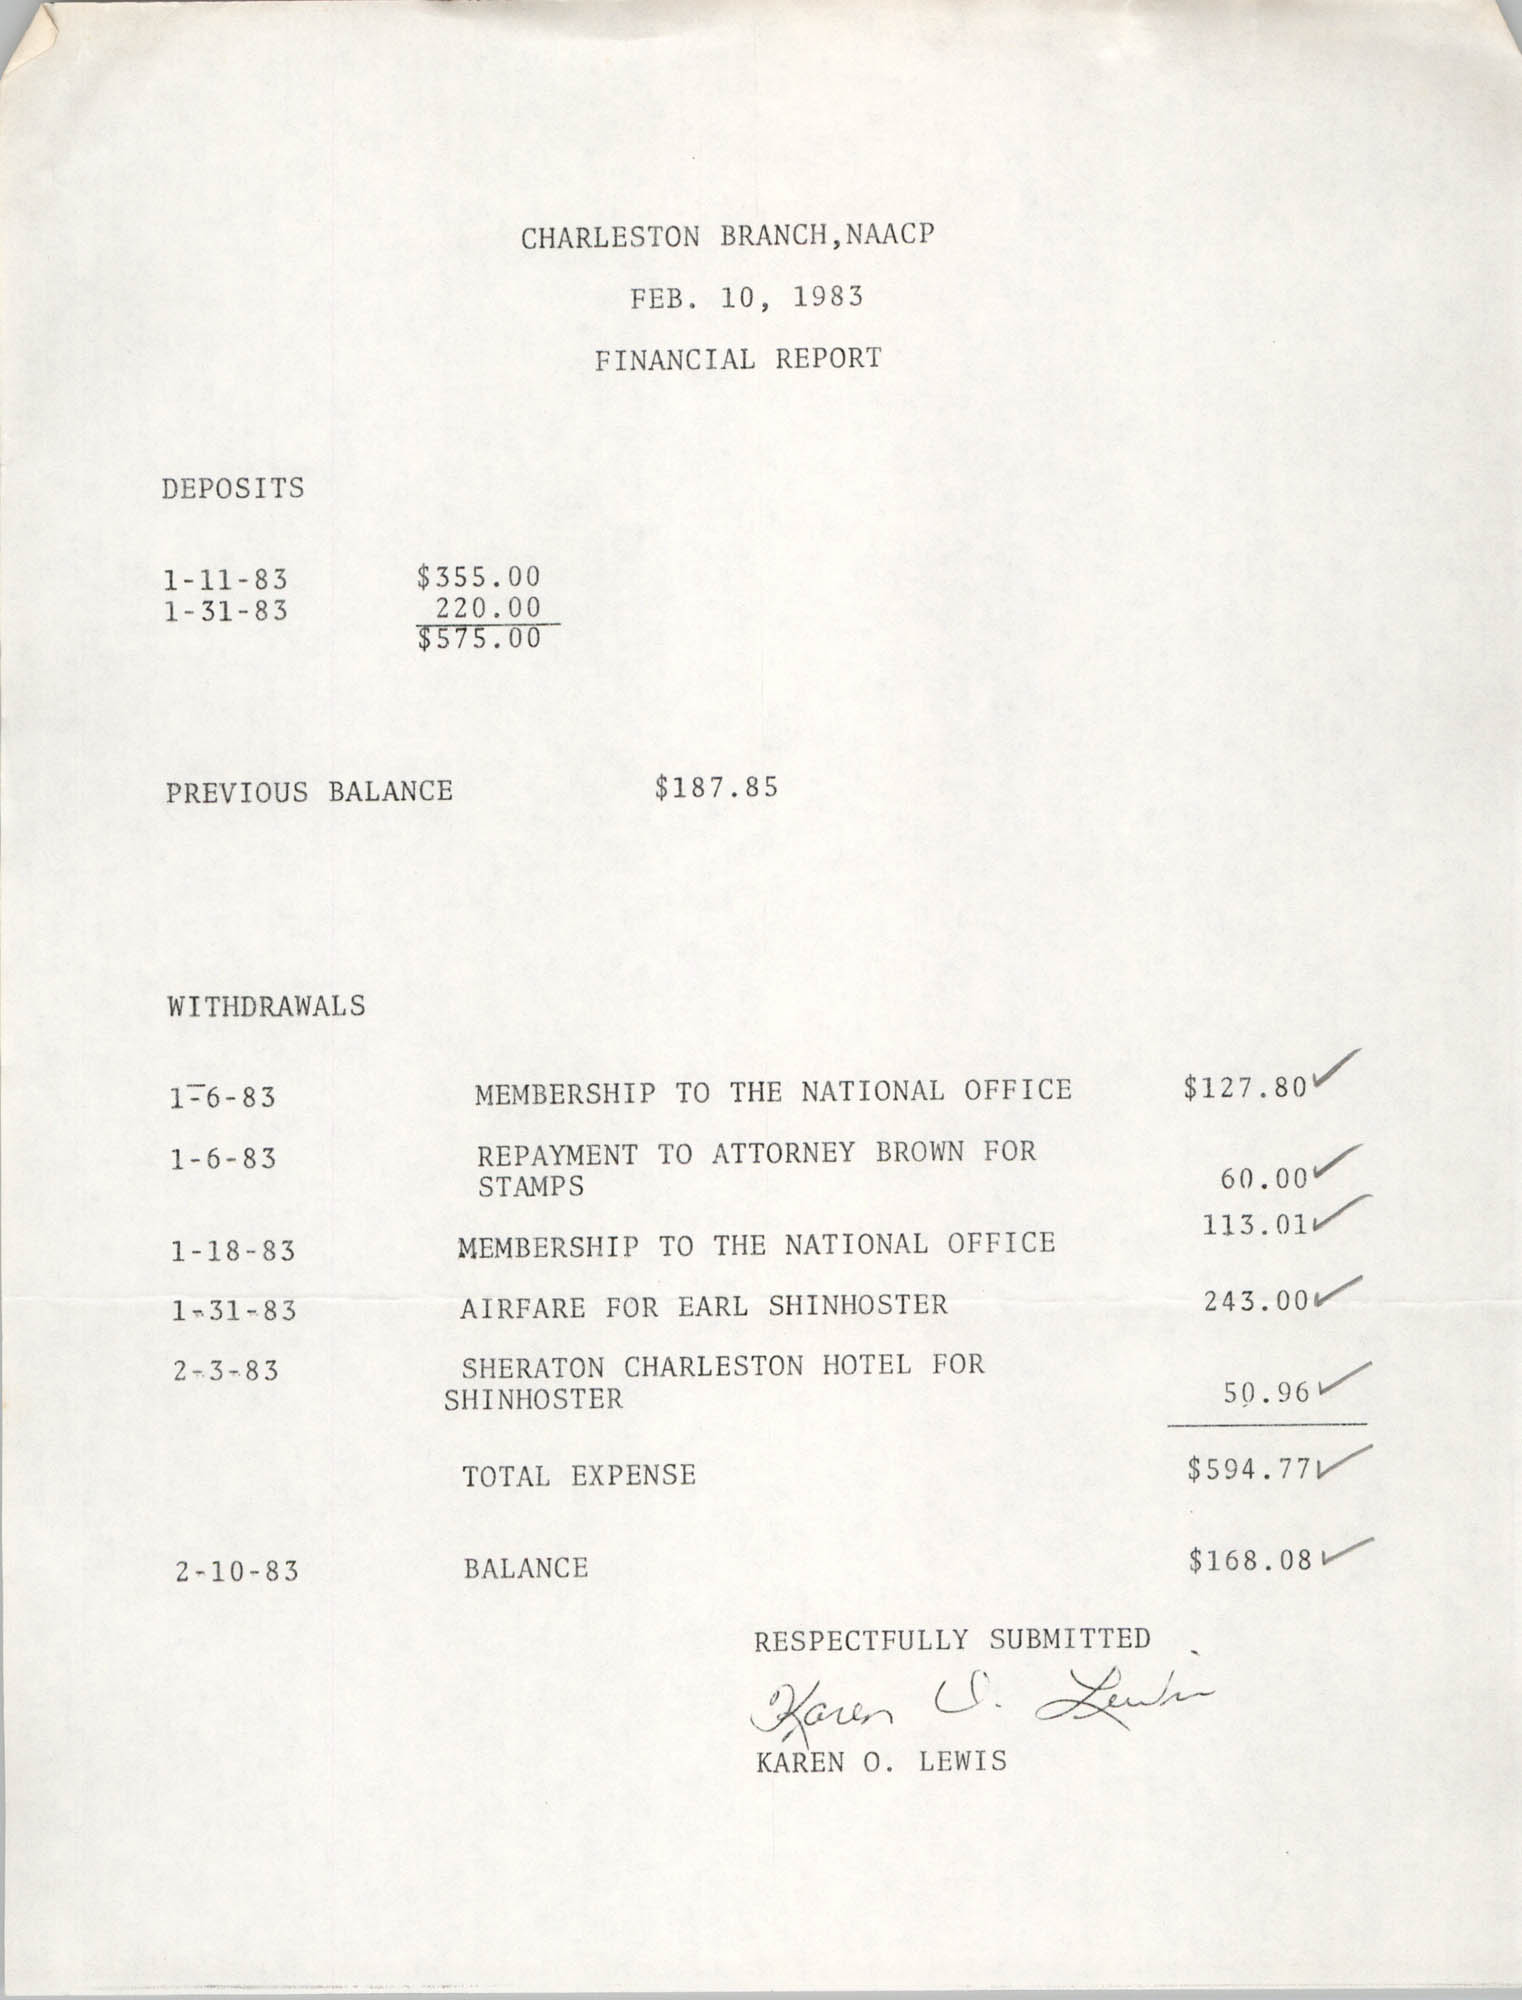 Charleston Branch of the NAACP Financial Report, February 10, 1983